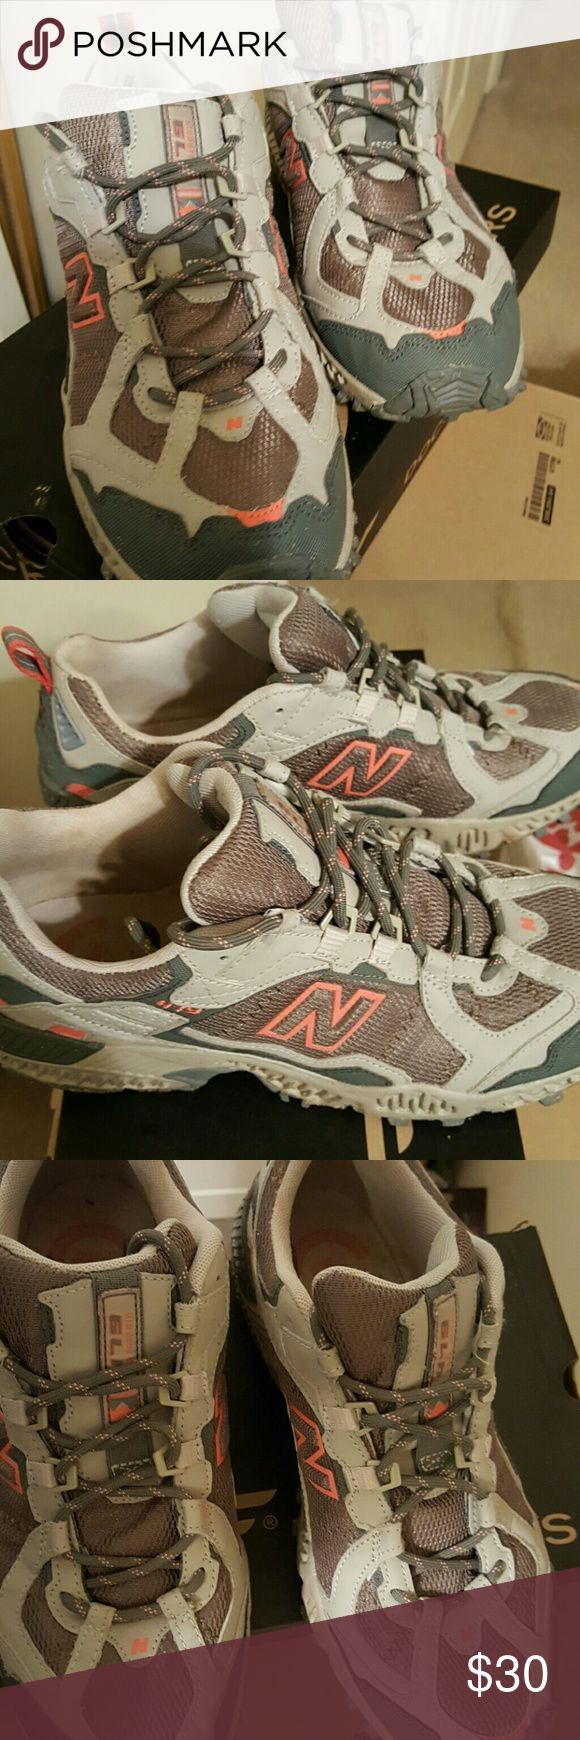 Hiking sneakers New Balance all terrain sneaker. Worn a couple of times. In great condition. New Balance Shoes Sneakers